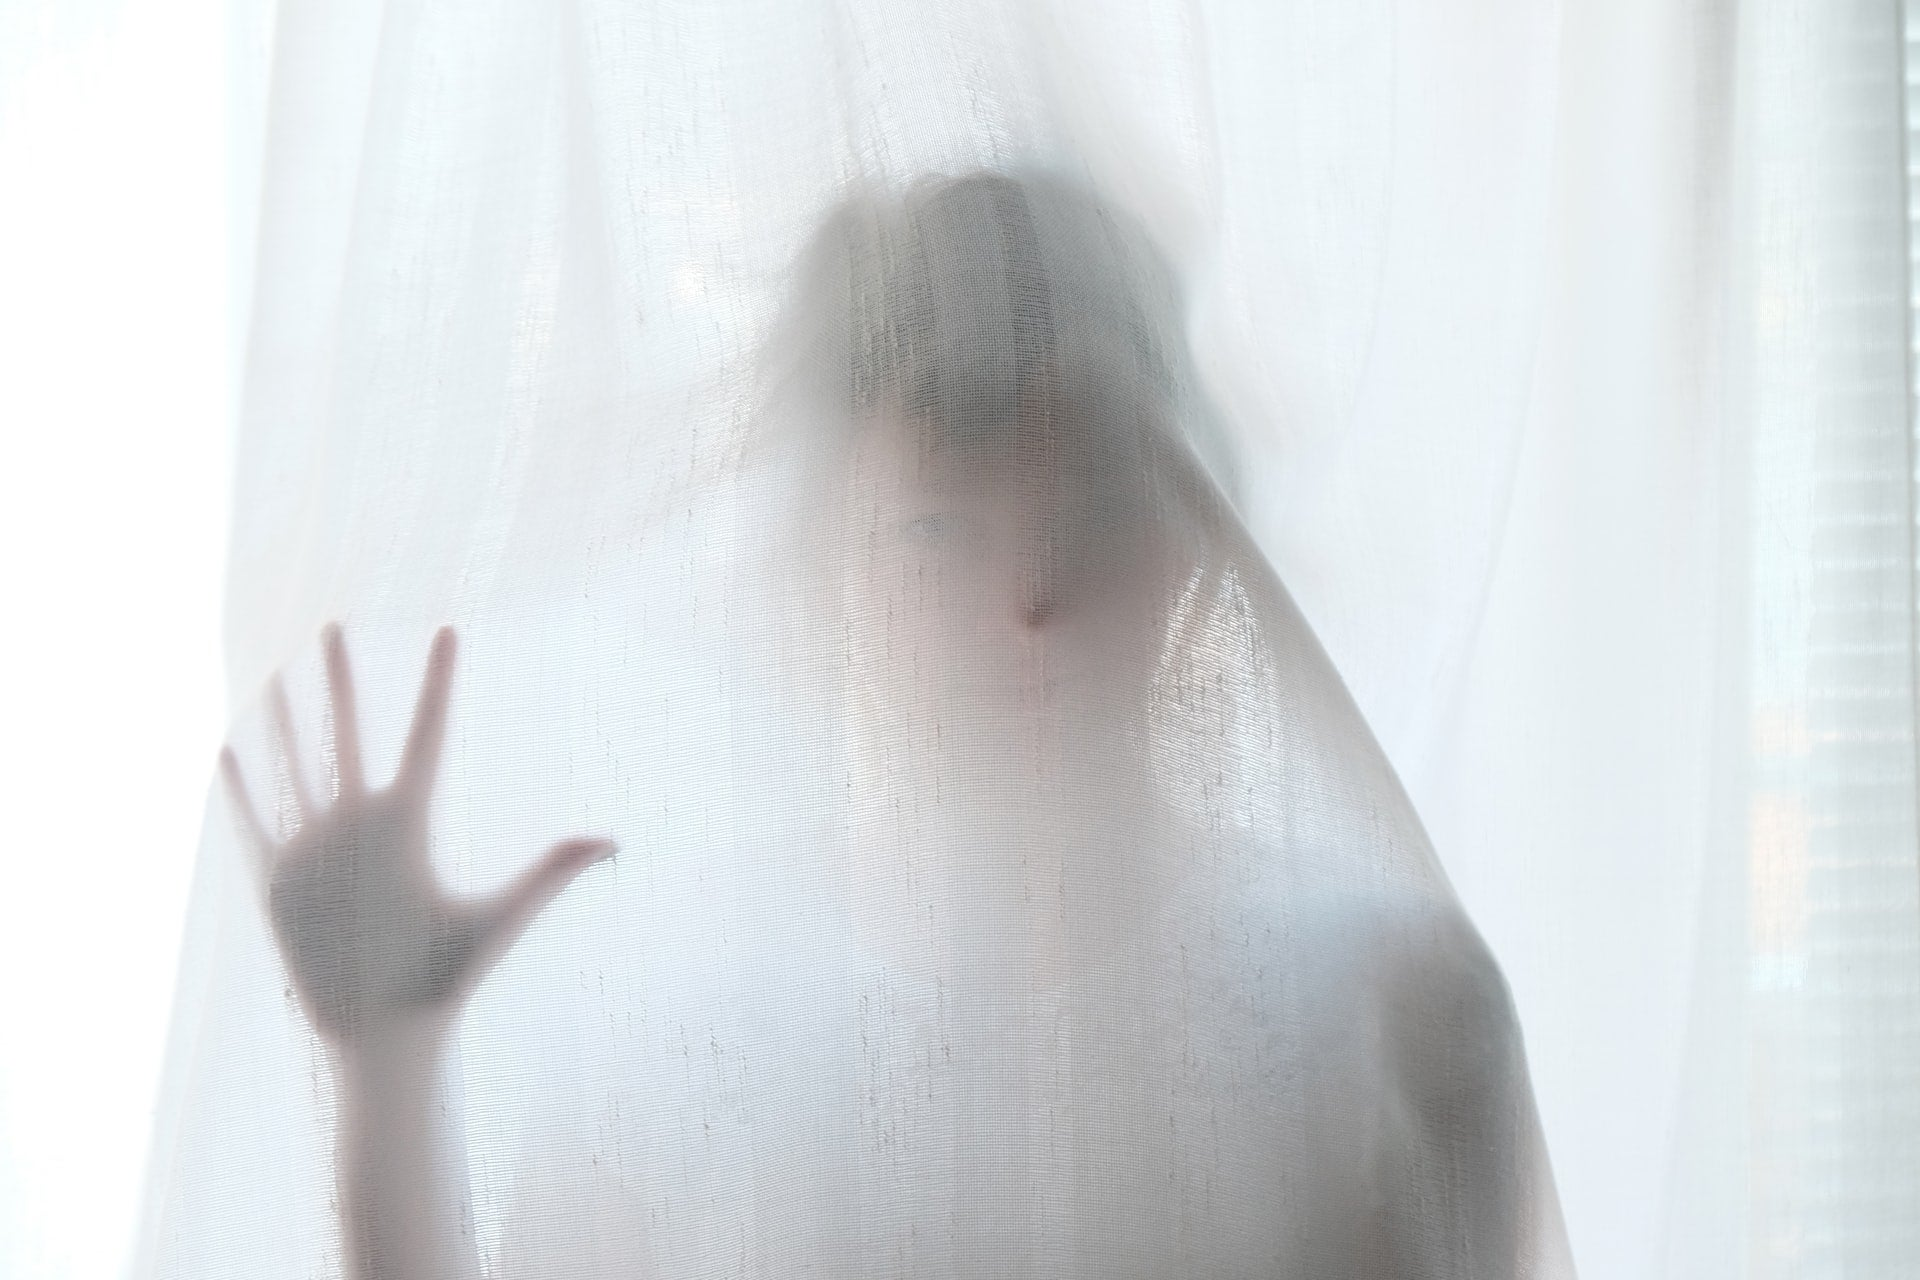 A person stands behind a white gauzy curtain in a spooky fashion